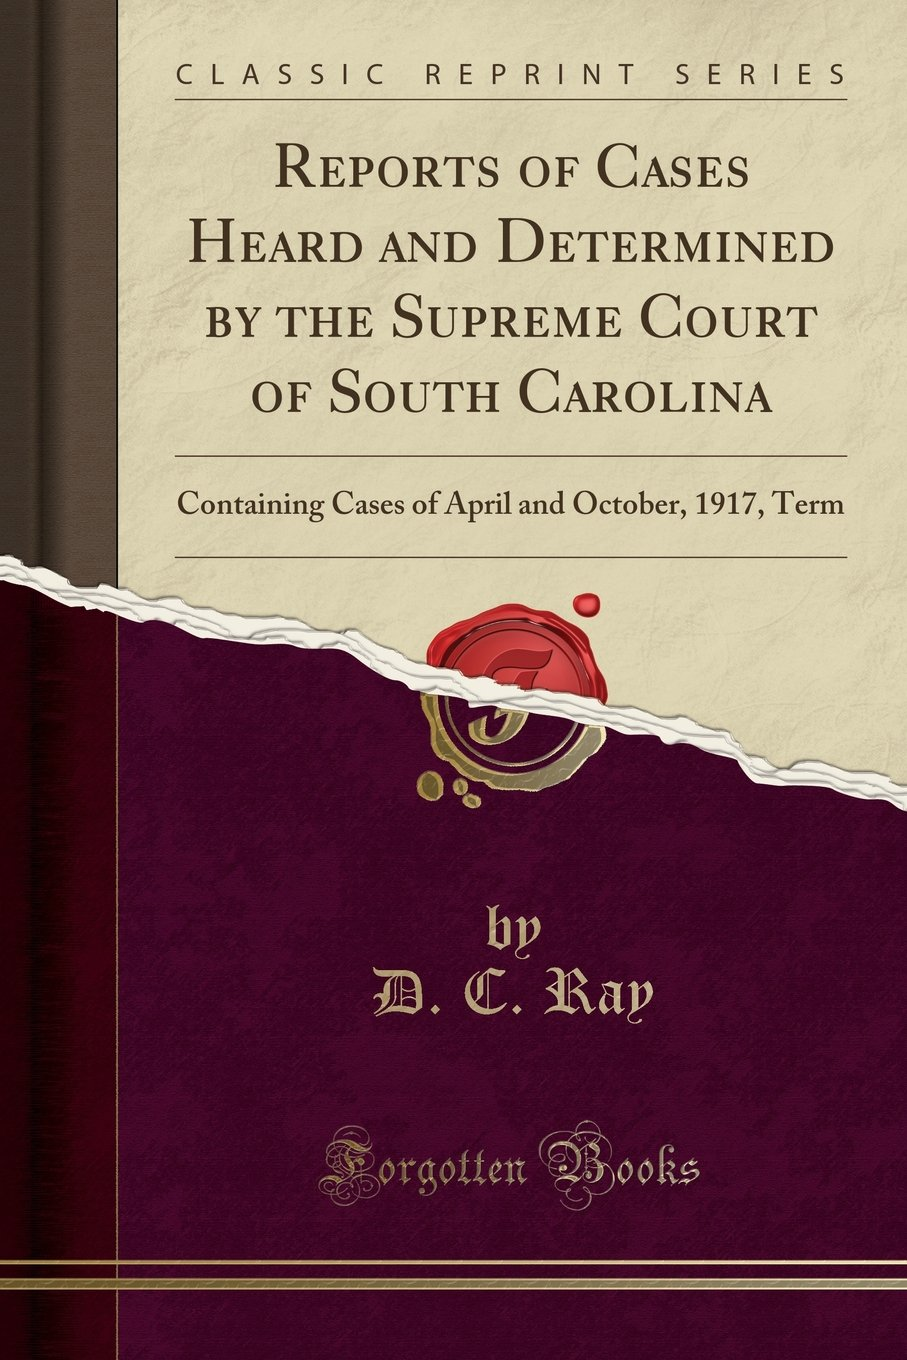 Reports of Cases Heard and Determined by the Supreme Court of South Carolina: Containing Cases of April and October, 1917, Term (Classic Reprint) PDF